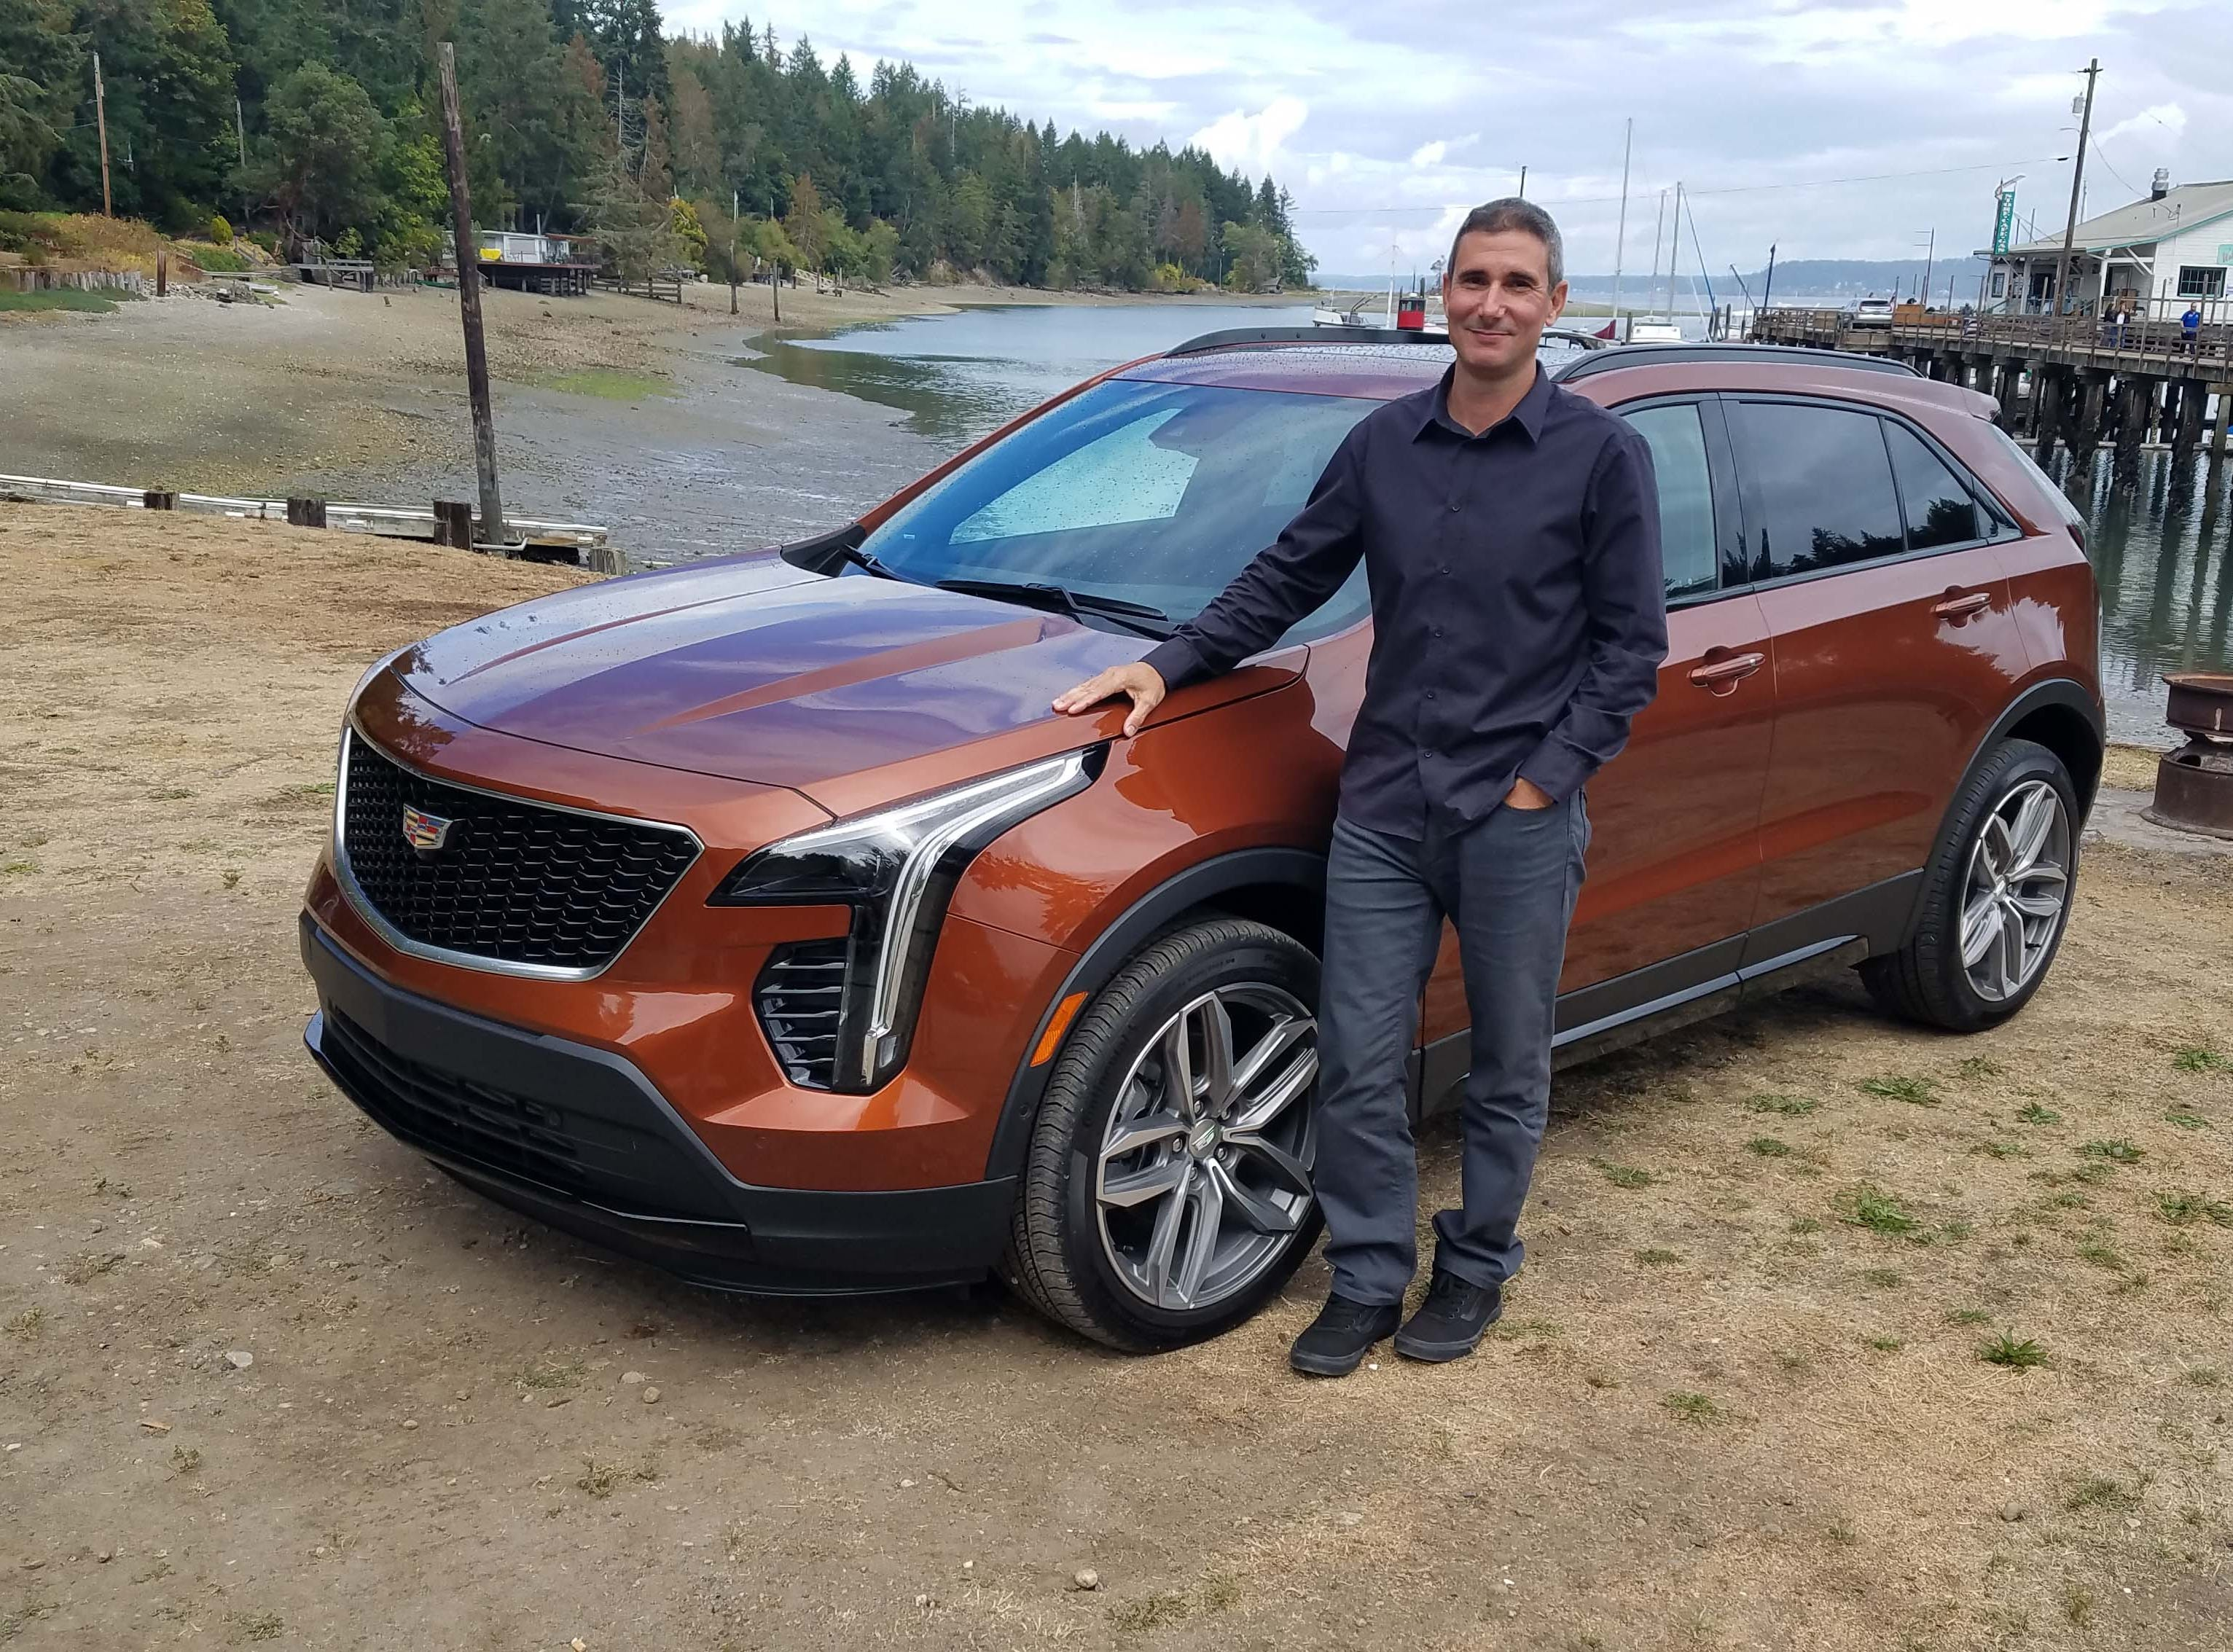 Caddy XT4 interior designer Phil Kucera penned the small ute's roomy, ergonomically-efficient inside. And he likes the exterior, too.